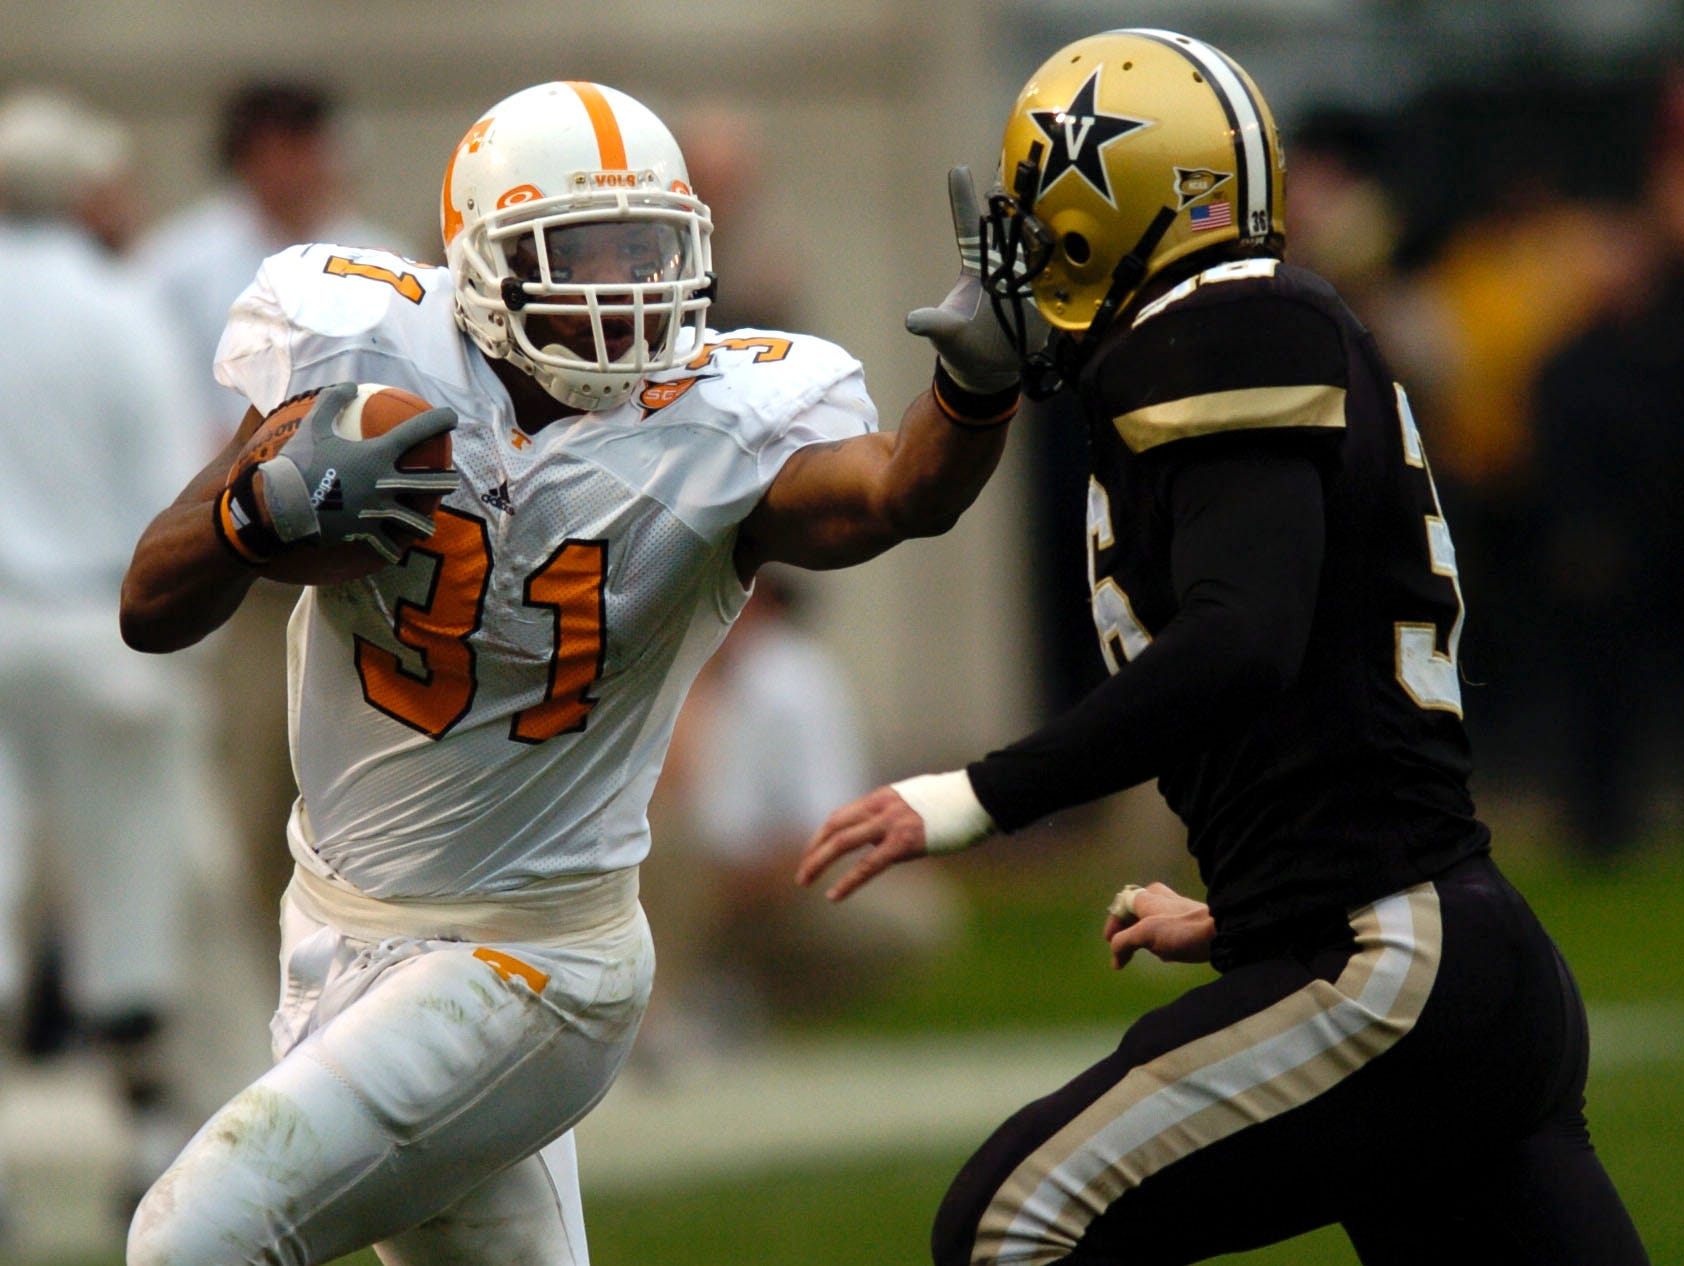 UT's Gerald Riggs, Jr. pushes off Vanderbilt's Andrew Pace on 11/20/04.